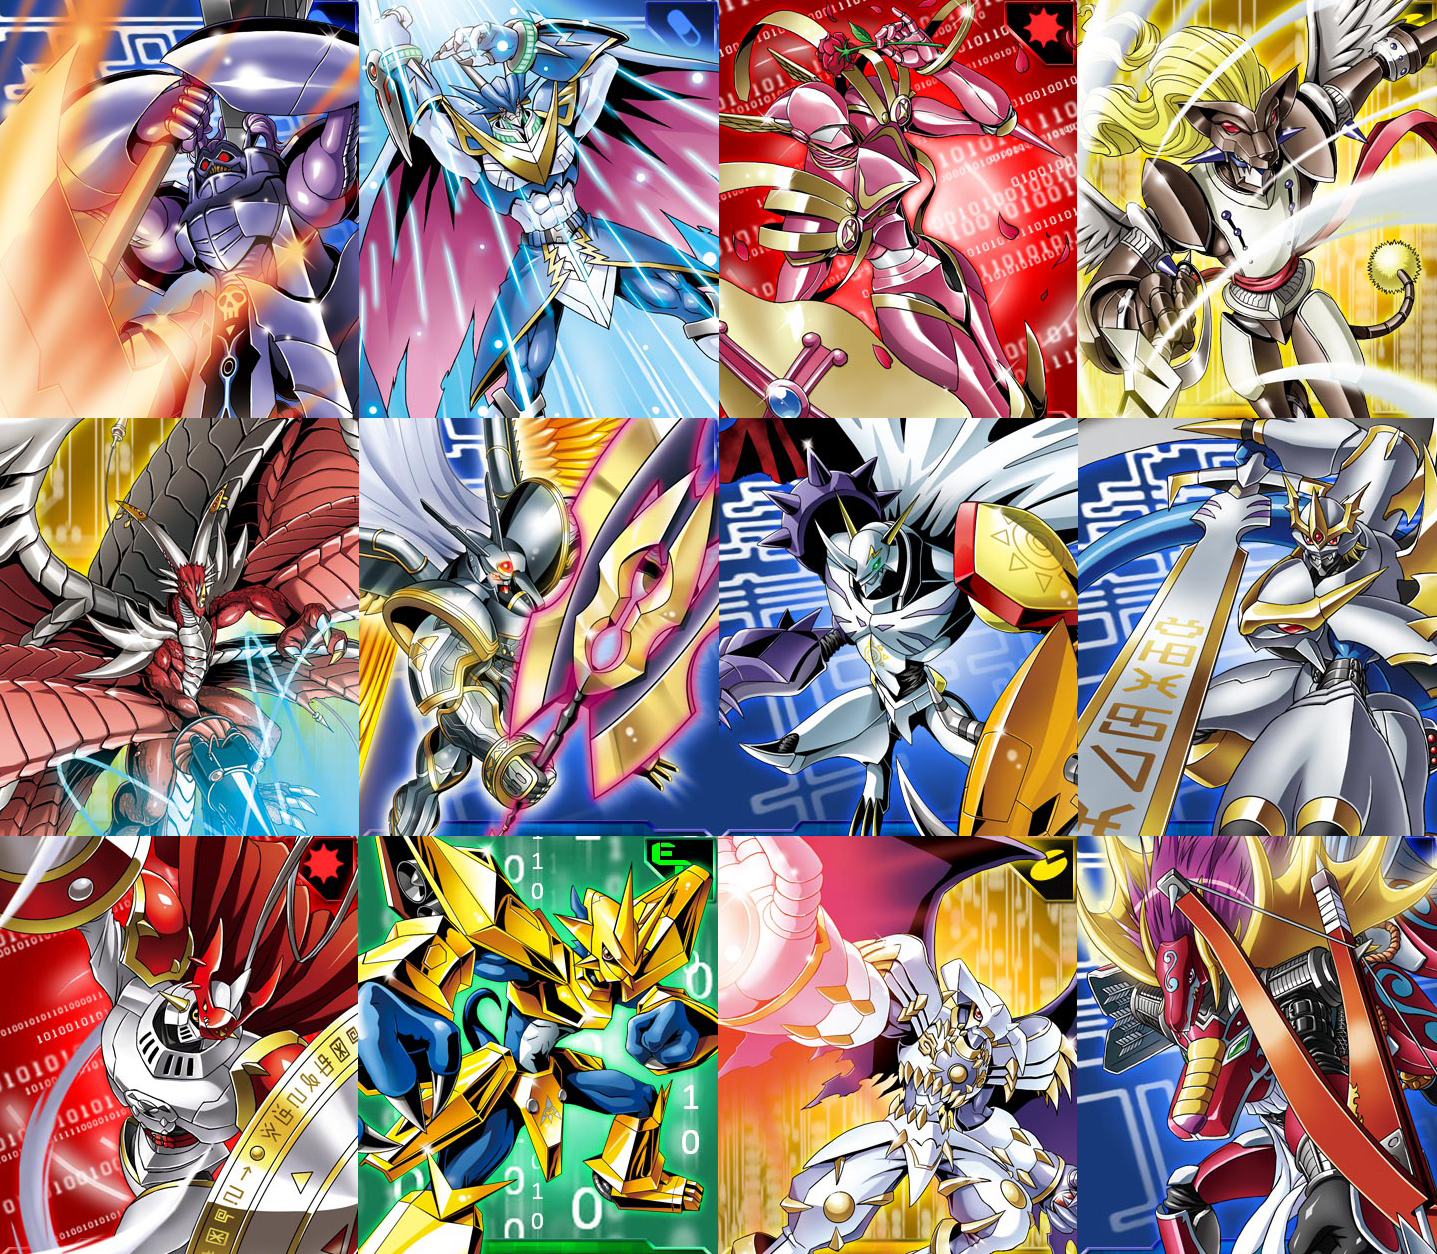 Image digimon royal superpower wiki for 12 knights of the round table characters